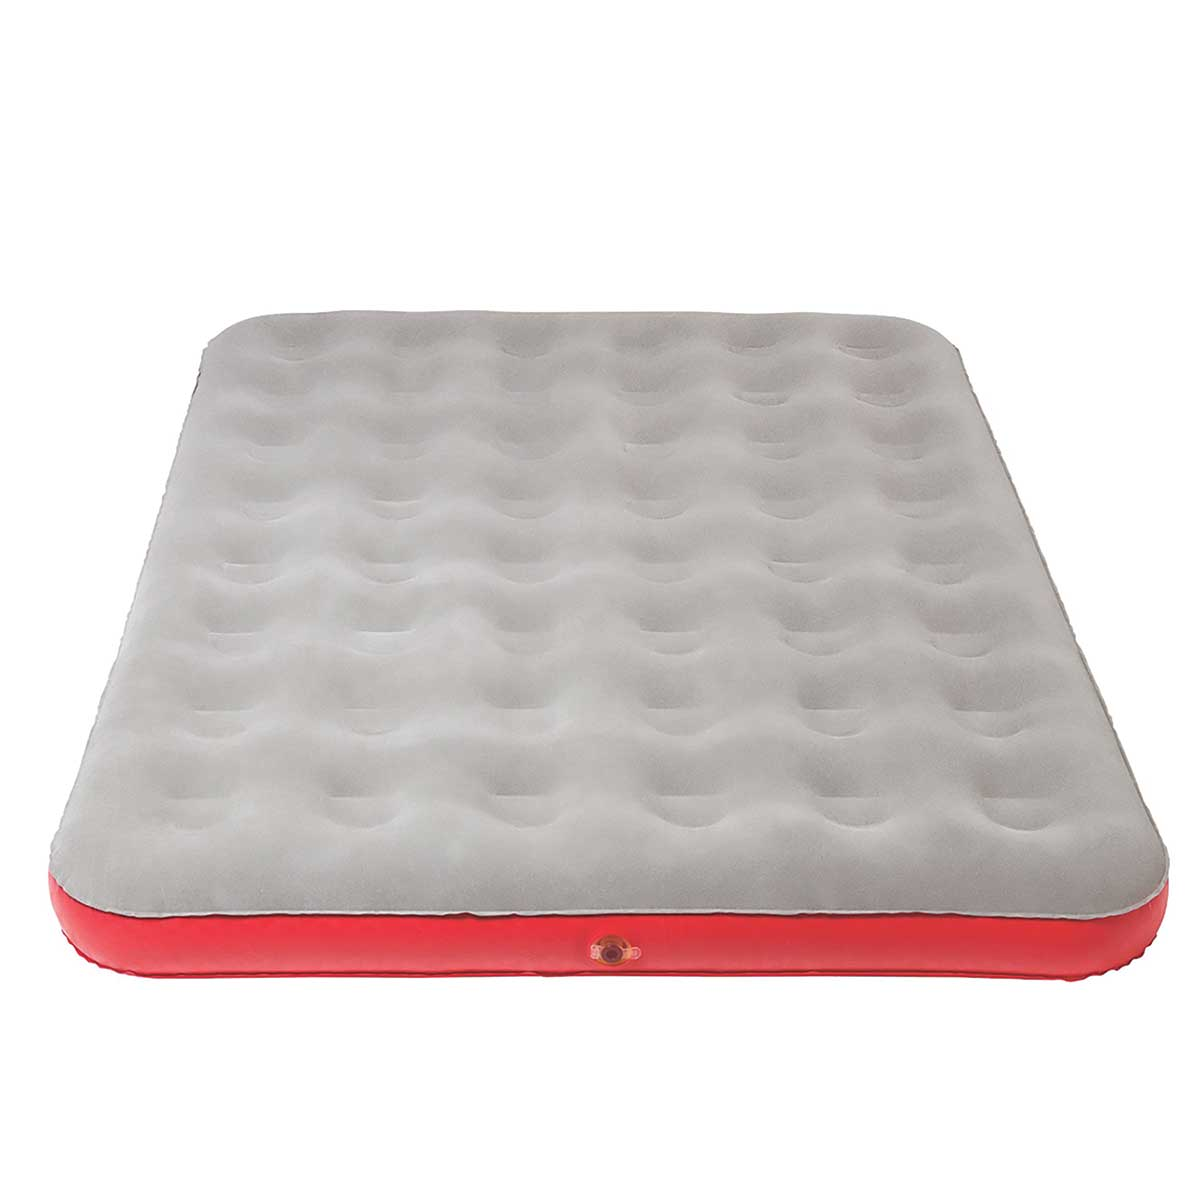 Coleman Textured Side Single High Airbed - Queen